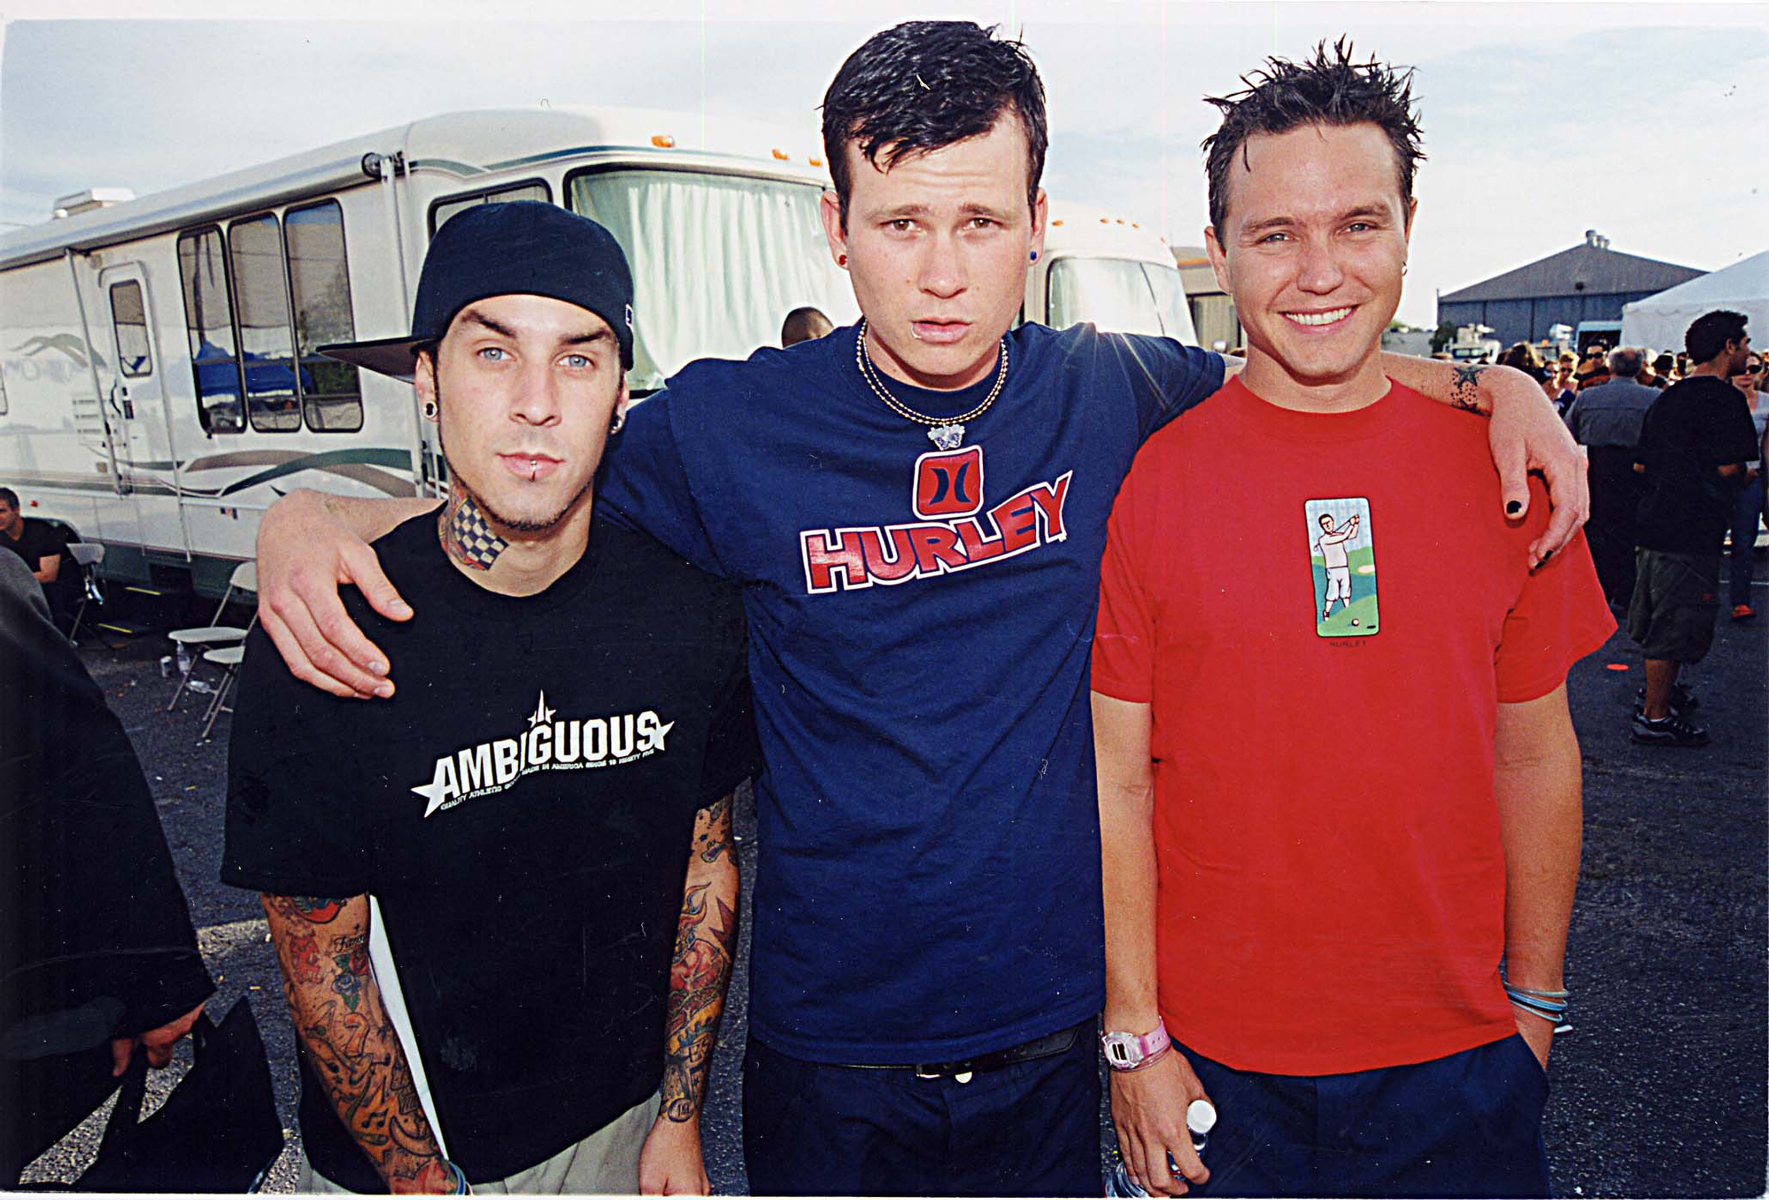 Blink 182 at the 1999 Teen Choice Awards in Los Angeles.